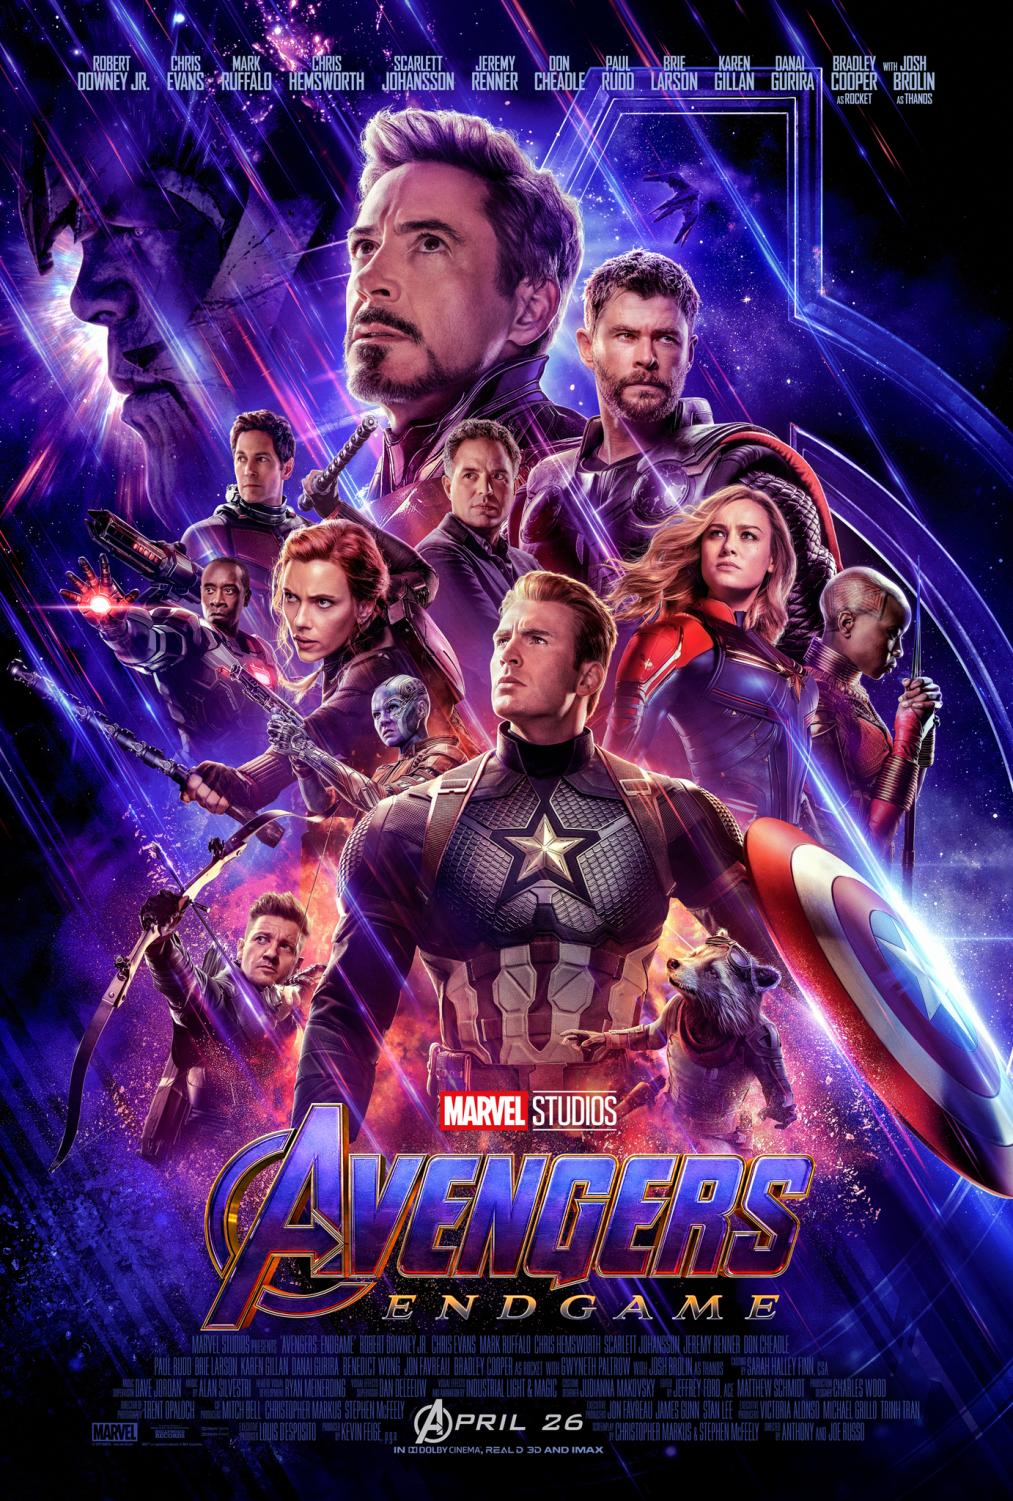 "The poster of Endgame was all over social media during its promotional period and after its release. The poster recognizes the stars of the movie in their character forms: Captain America, Ironman, Thor, Captain Marvel, Black Widow, Hawkeye, Rocket, Bruce Banner (the Hulk), Rocket, Okeye, Nebula, War Machine, and Antman. ""It wasn't over dramatic, but it was so emotional. It was a perfect end to these movies,"" junior Alison Houtz said."